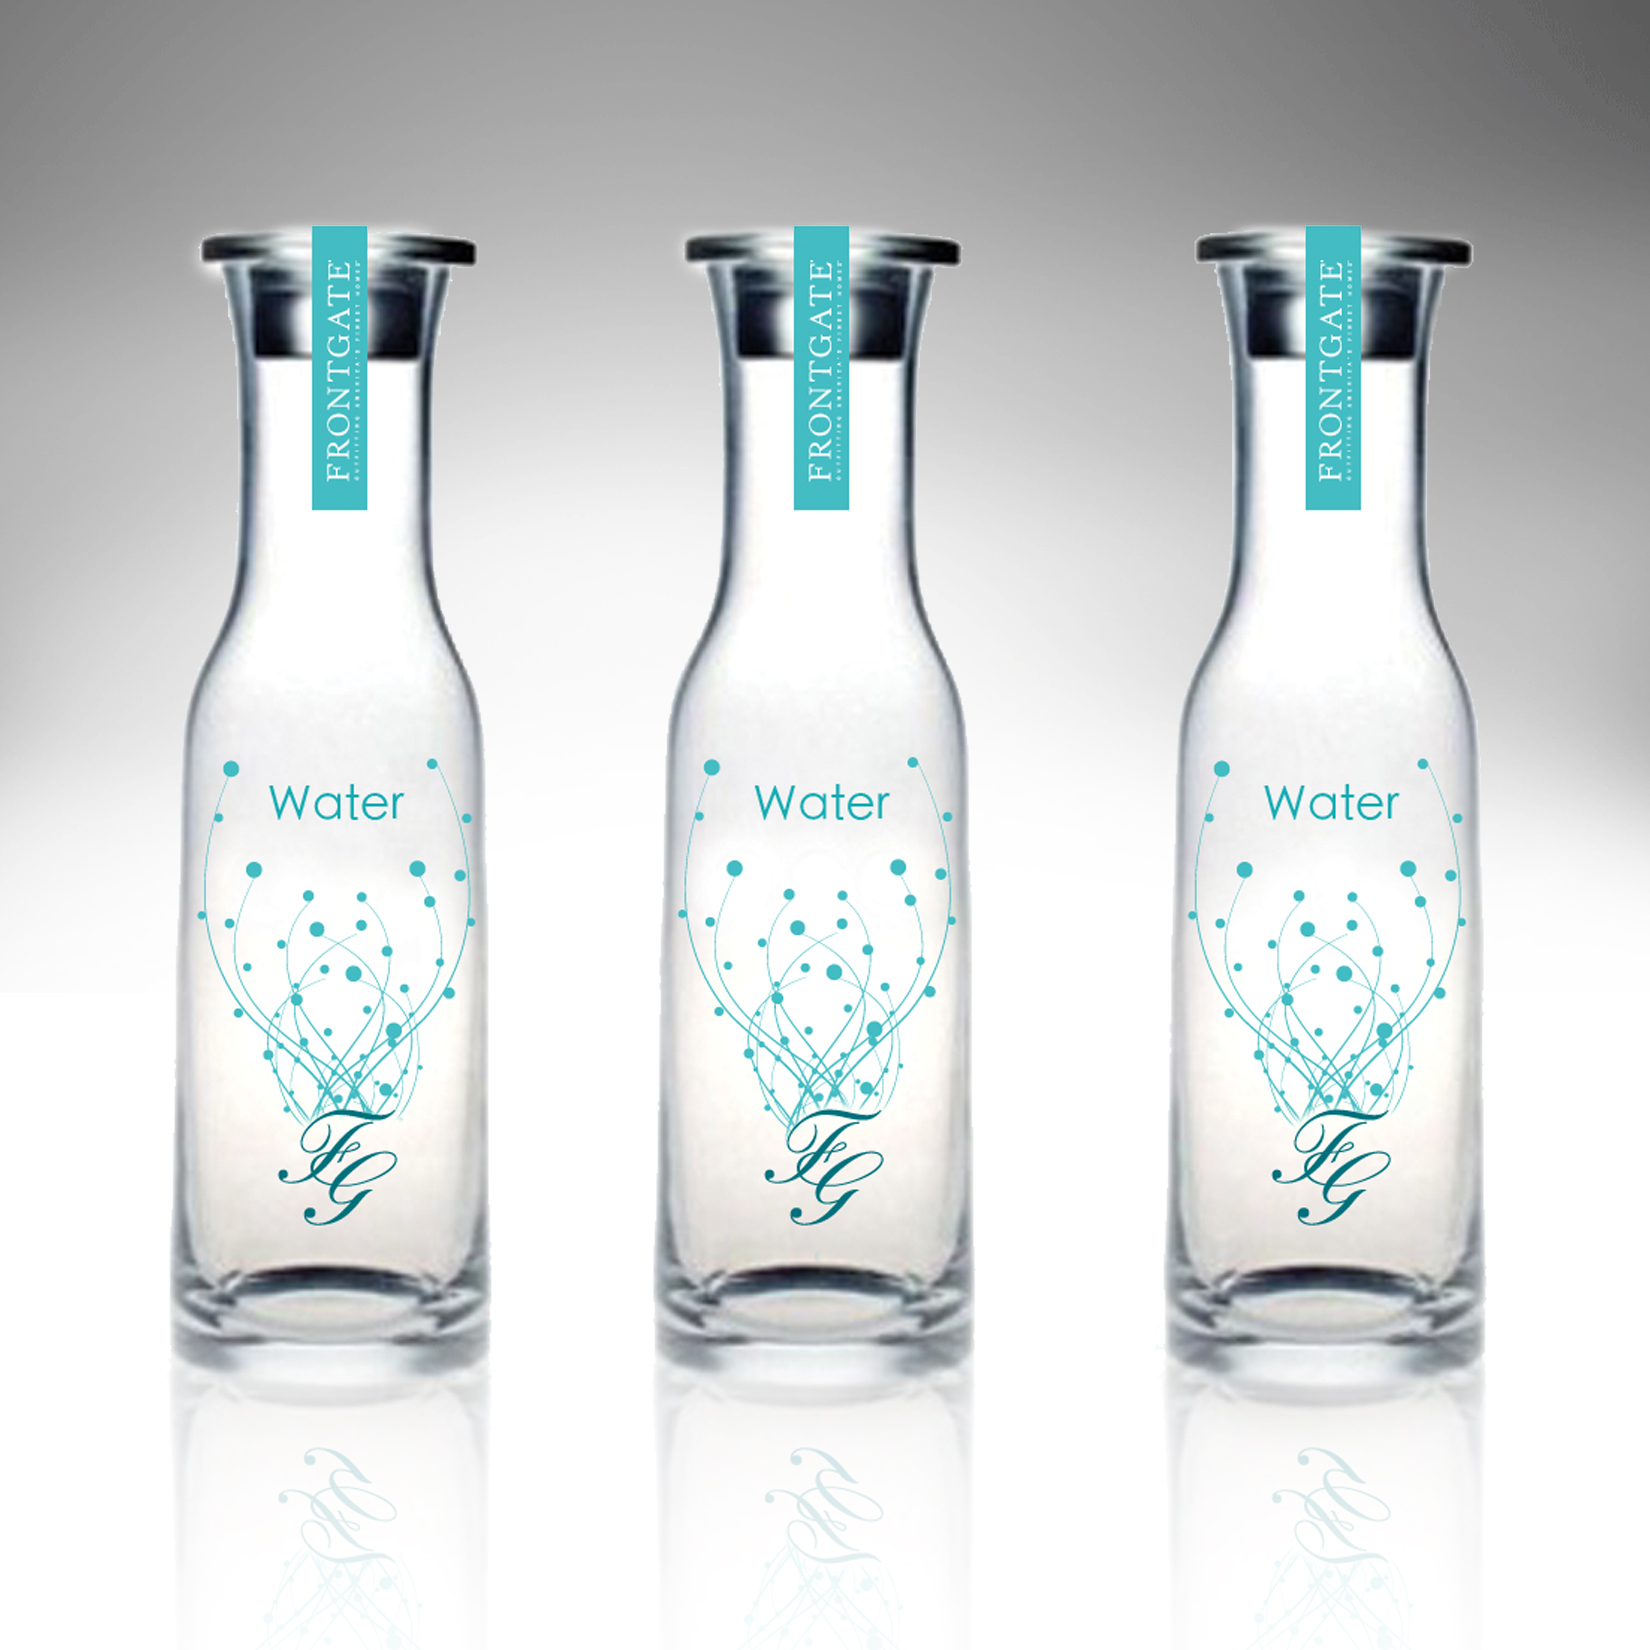 water bottles by olga cuzuioc sinchevici at